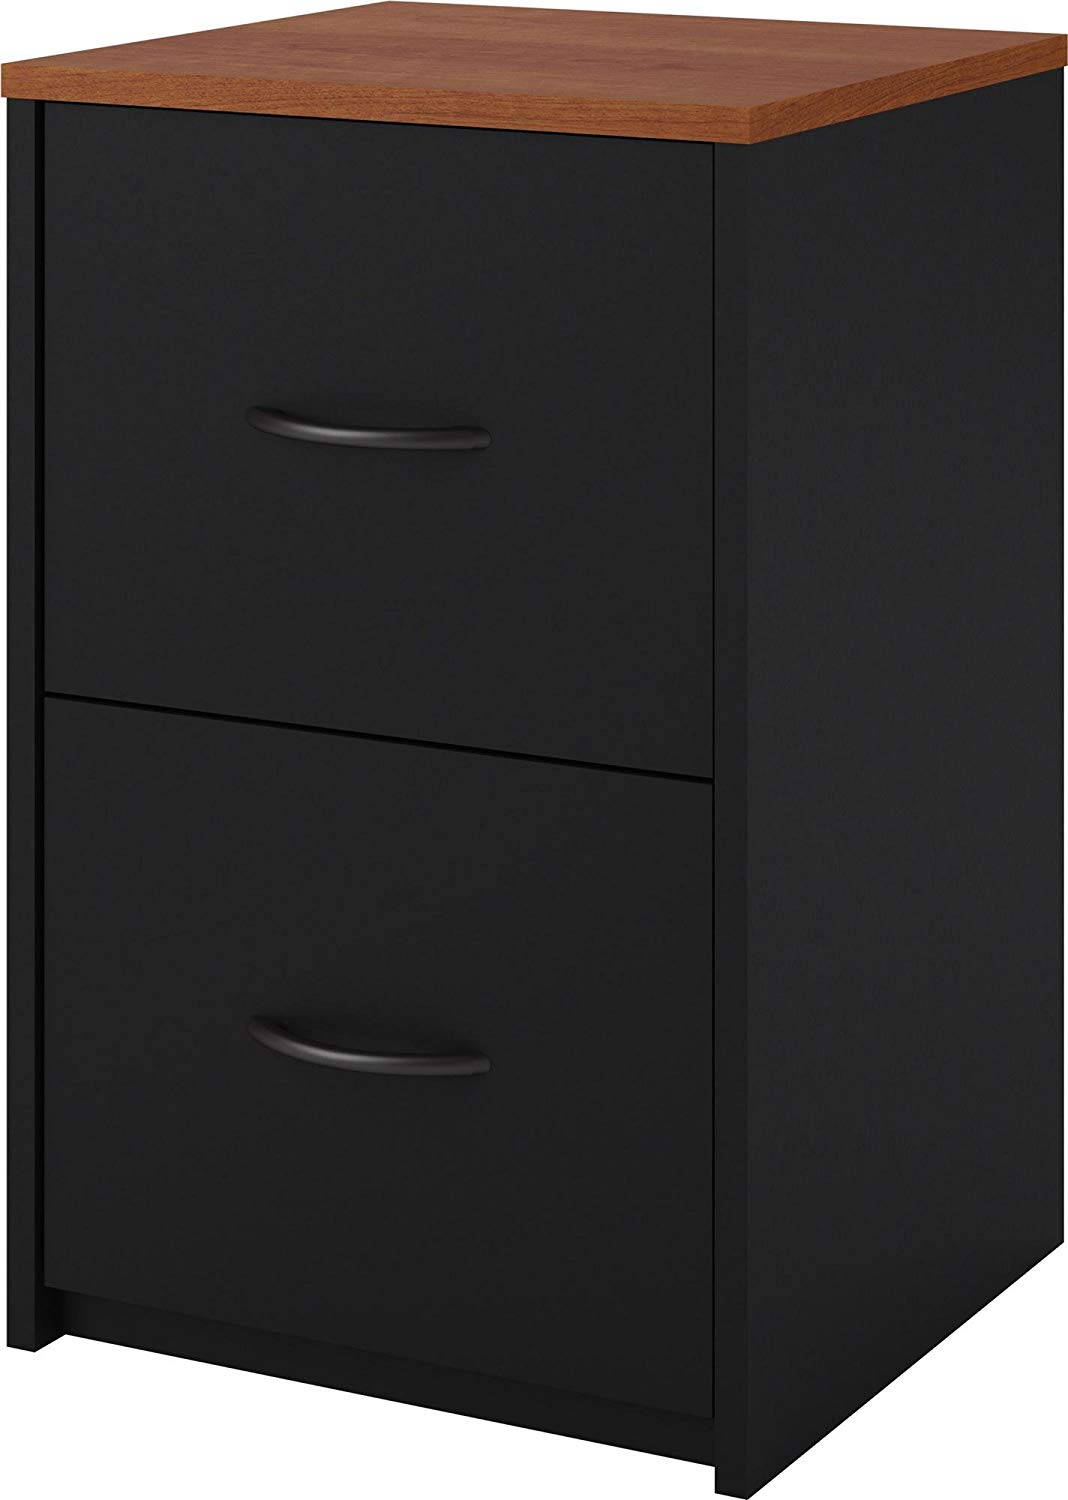 Ameriwood The Home Office 2-Drawer File Cabinet, Black